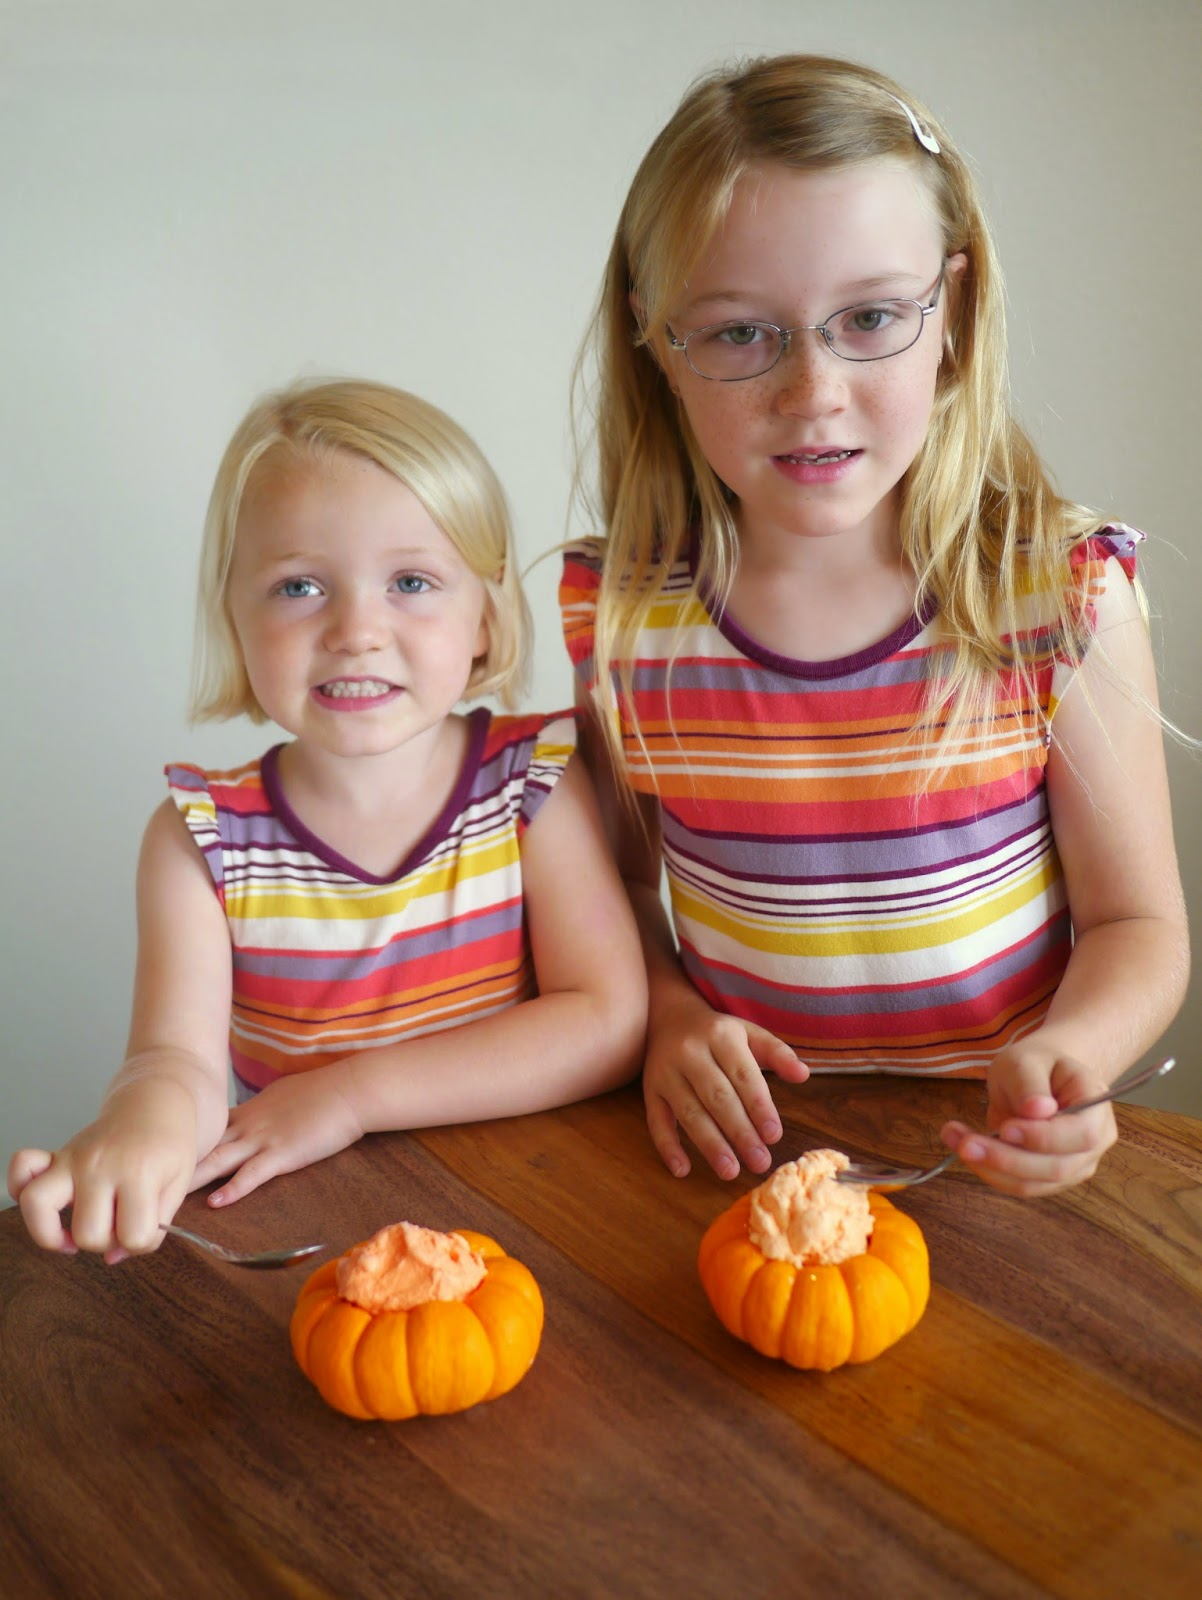 My kids arenu0027t huge fans of pumpkin flavor so weu0027re making the ice cream  vanilla however you could add pumpkin pie spice for a more authentic taste  of the